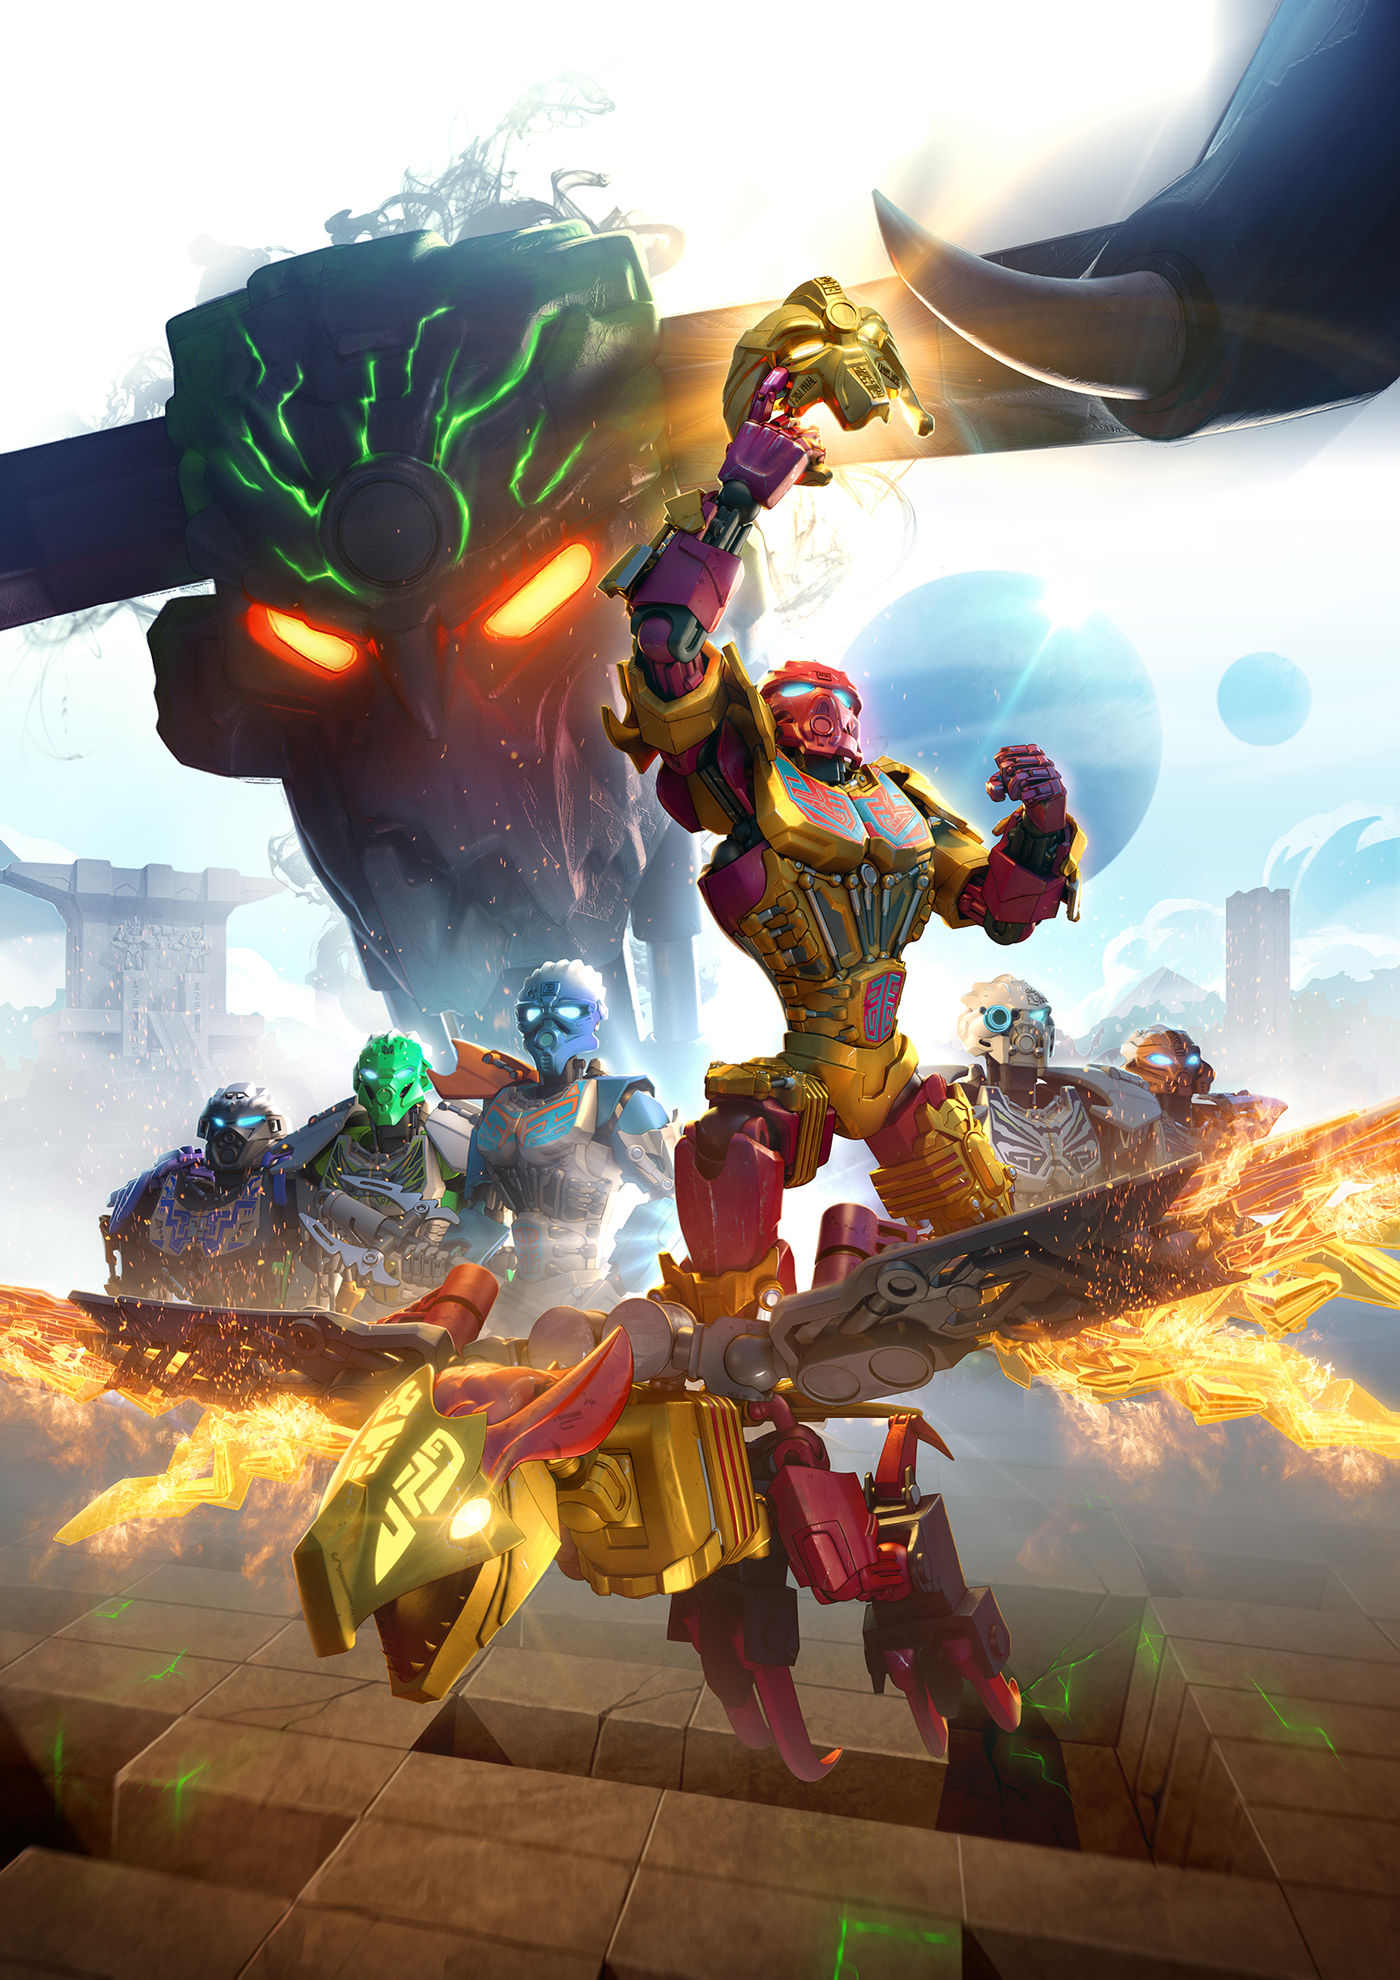 Lego - Bionicle JtO: Promo poster 1 on Behance